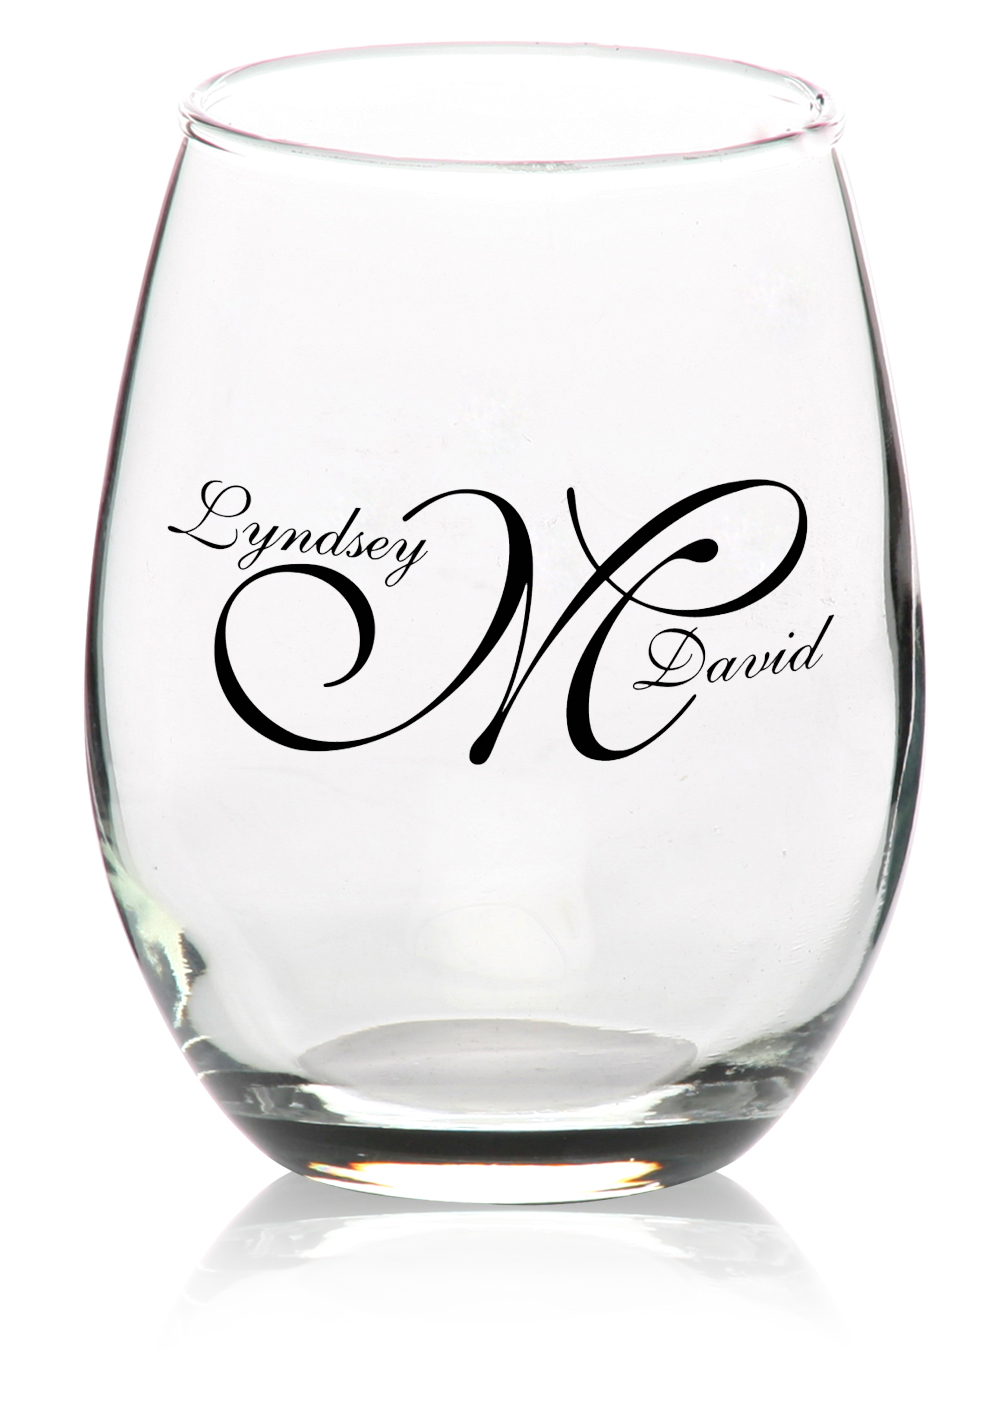 Custom Stemless Wine Glasses - Personalized Wine Glasses